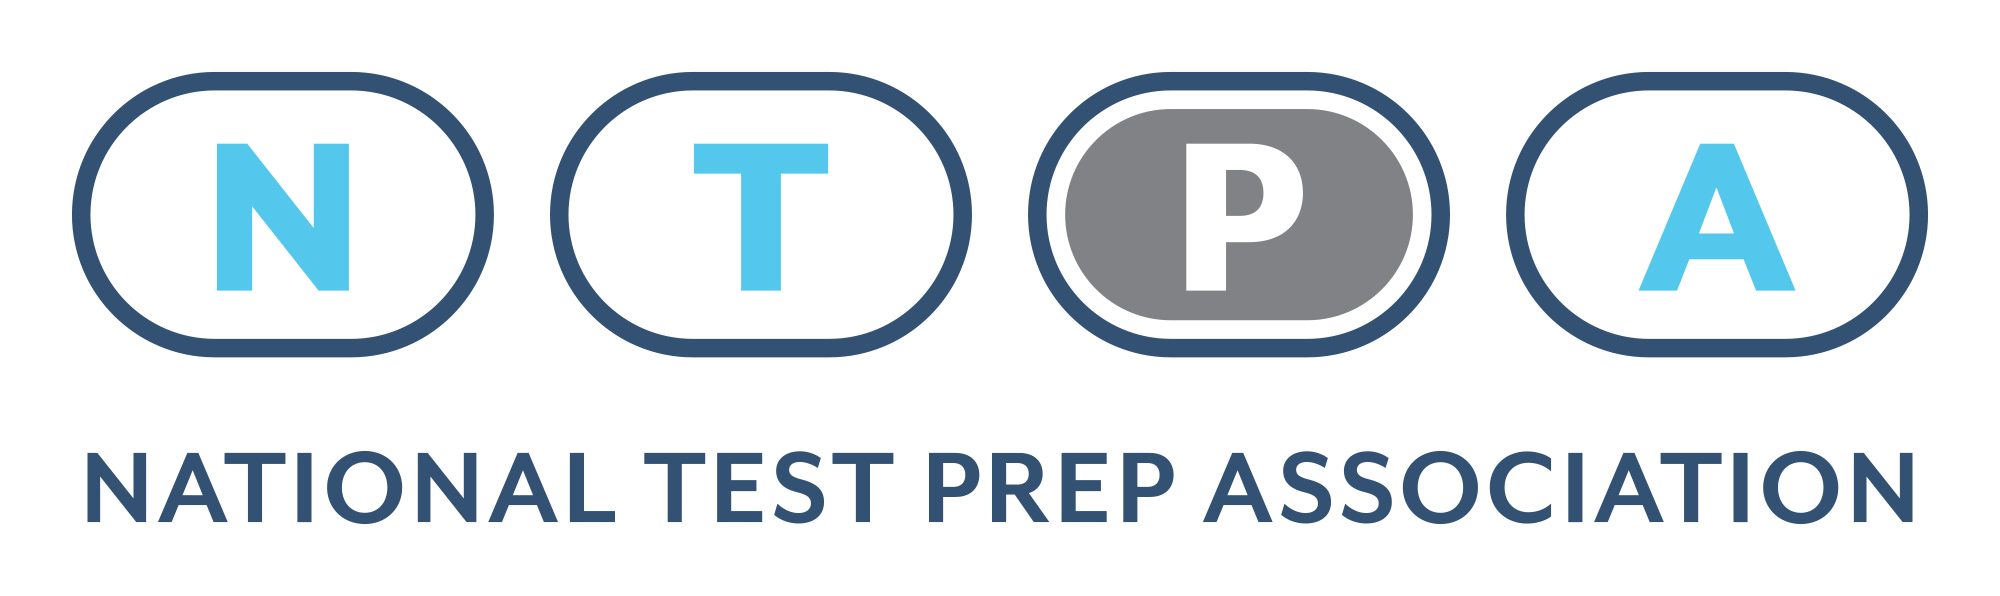 National Test Prep Association